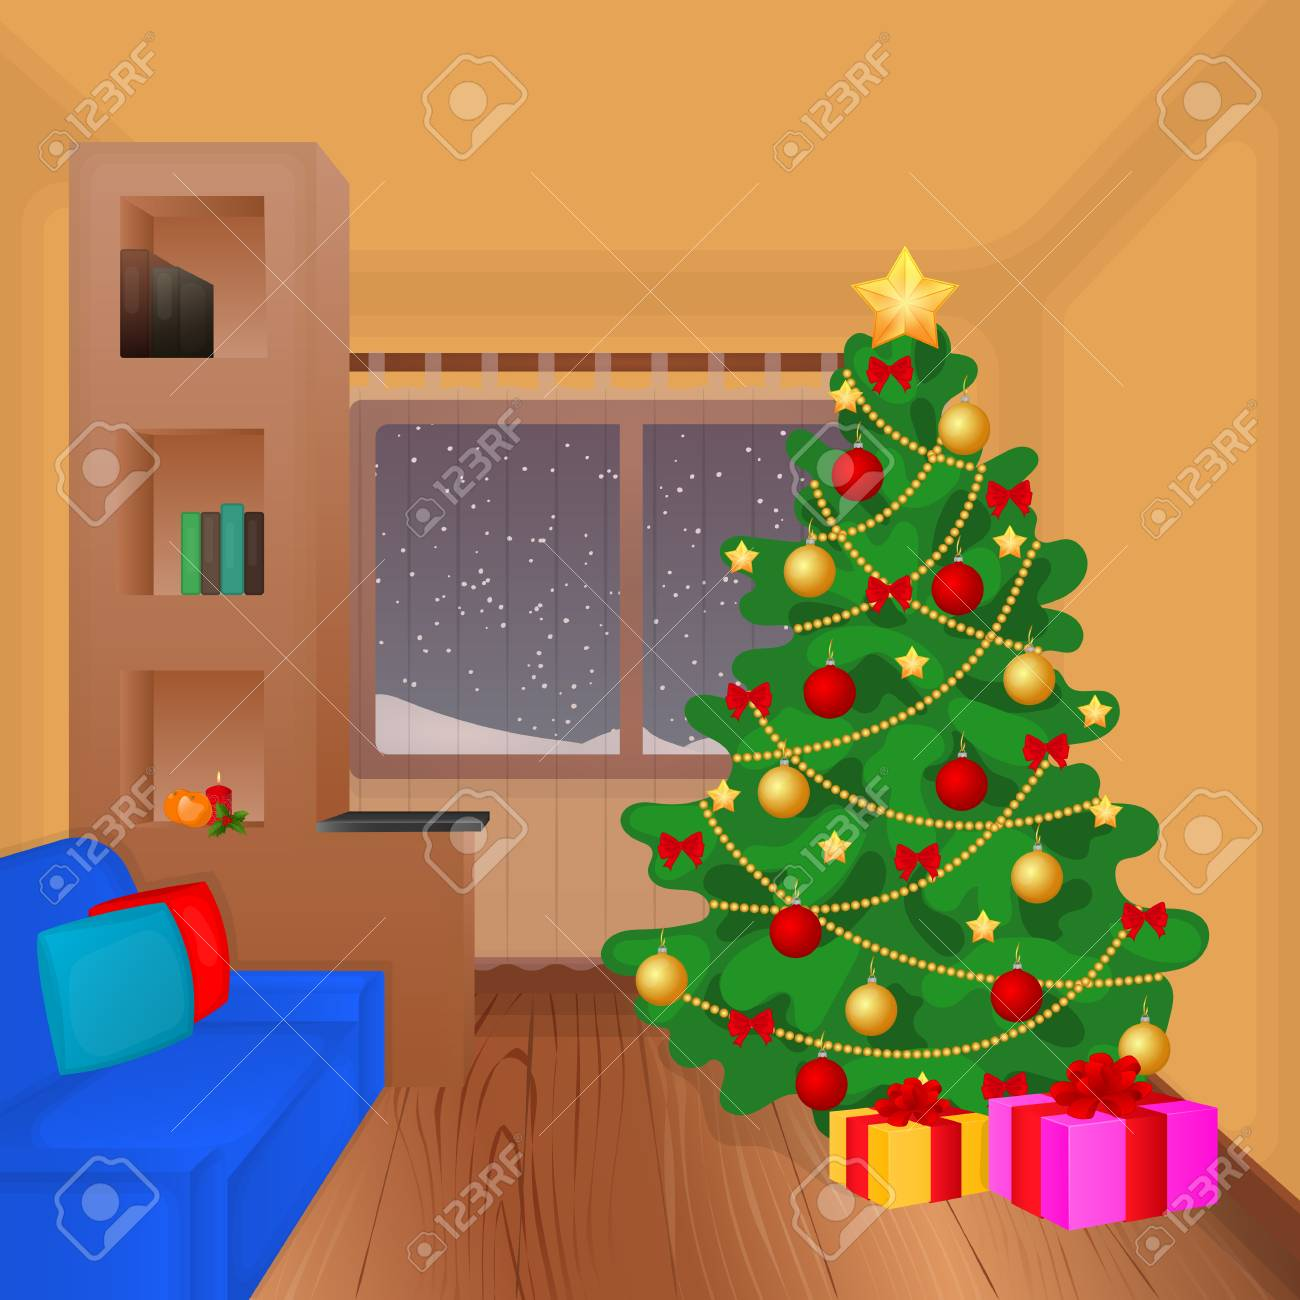 Christmas Living Room With Xmas Tree Presents Couch And Decoration Royalty Free Cliparts Vectors And Stock Illustration Image 68723812 Disney series & full length cartoons in english. christmas living room with xmas tree presents couch and decoration